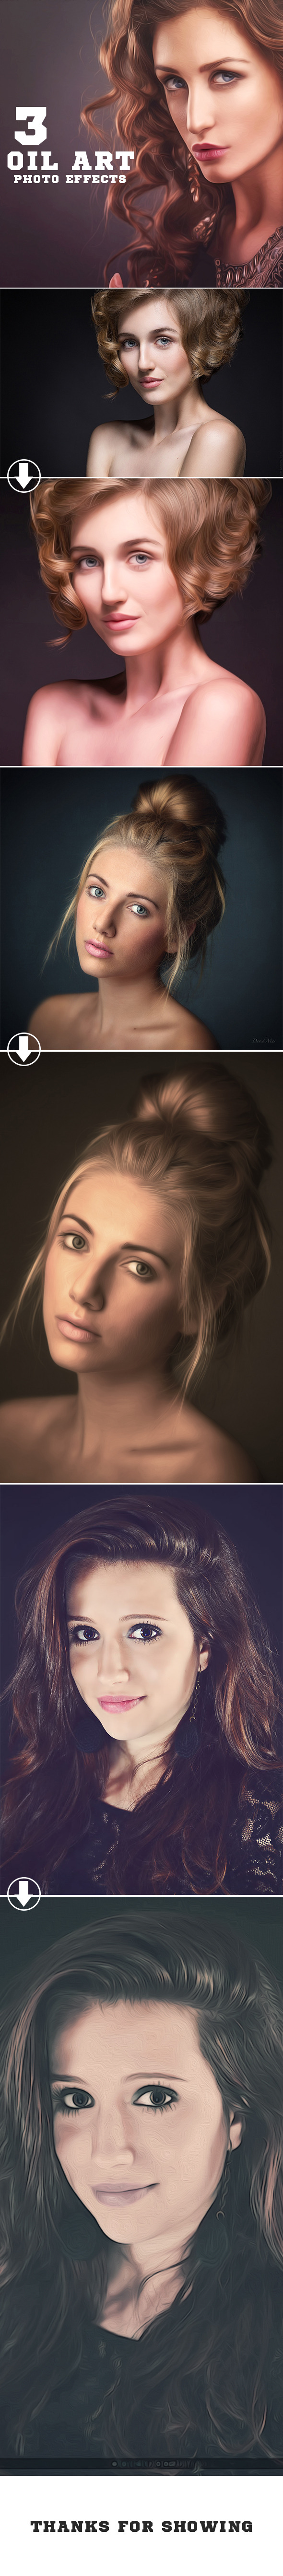 3 Oil Paint Photo Effects - Photo Effects Actions